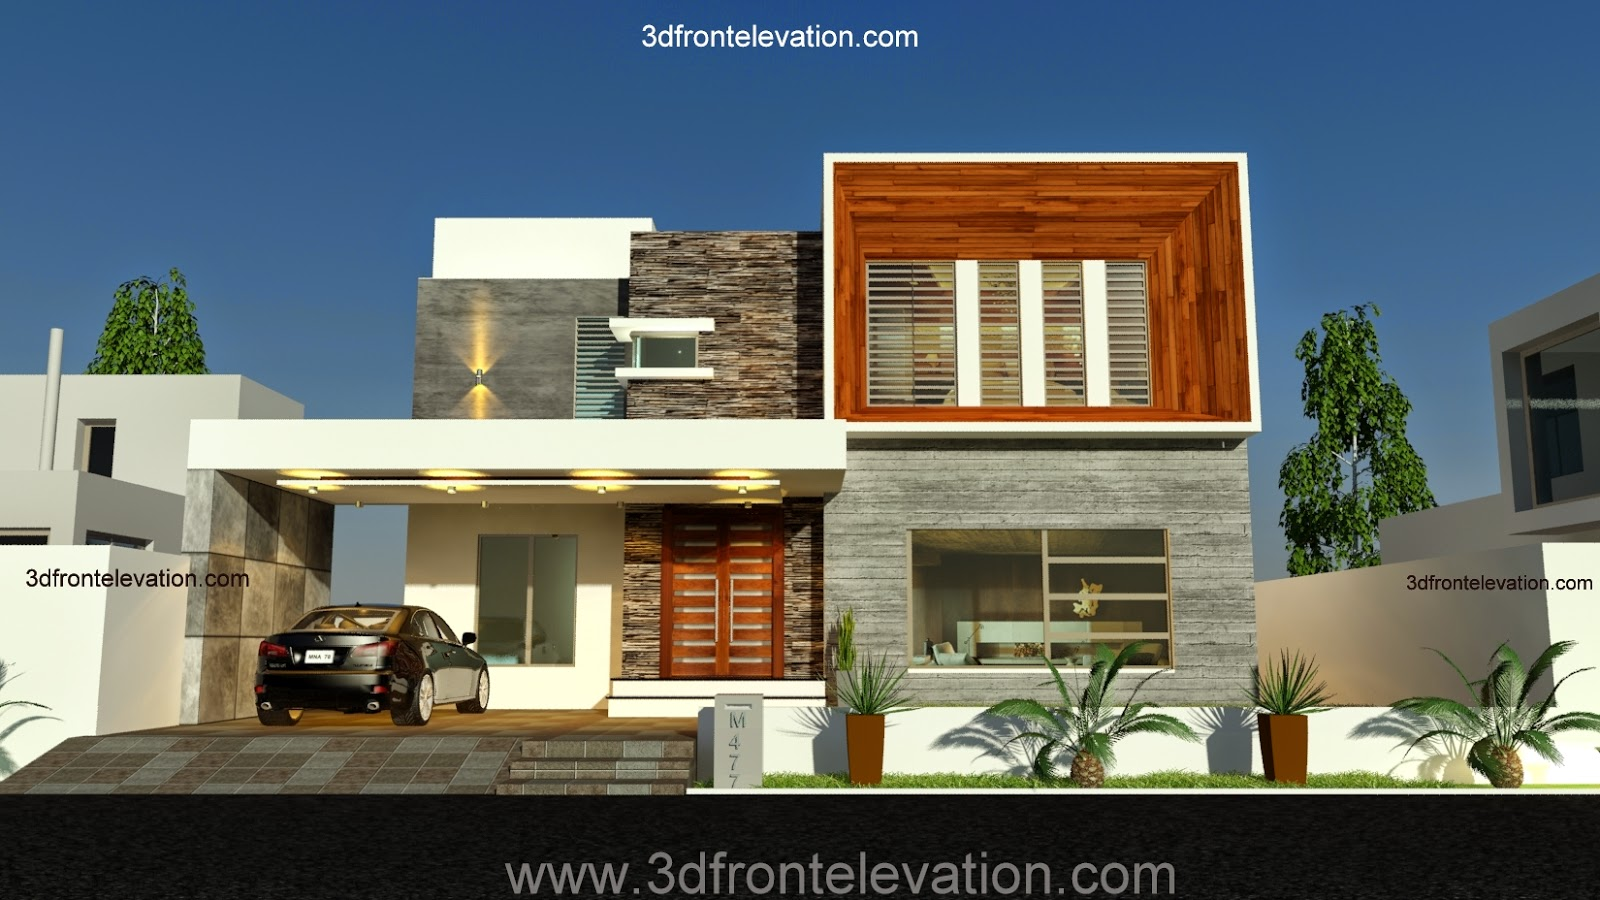 3D Front Elevation.com: New 1 Kanal Contemporary House